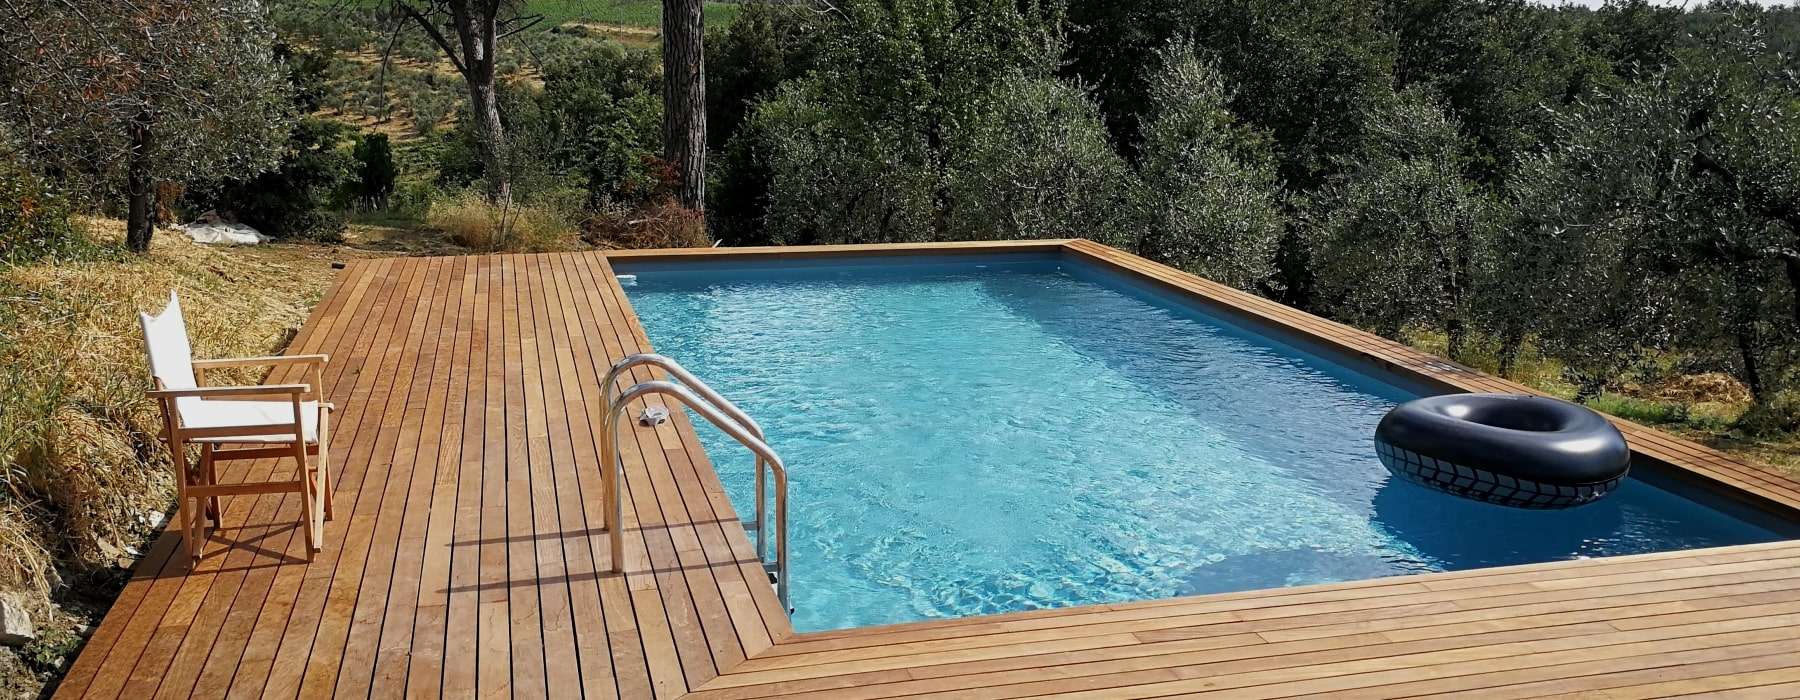 Piscine senza permessi in Toscana by Gardenpool